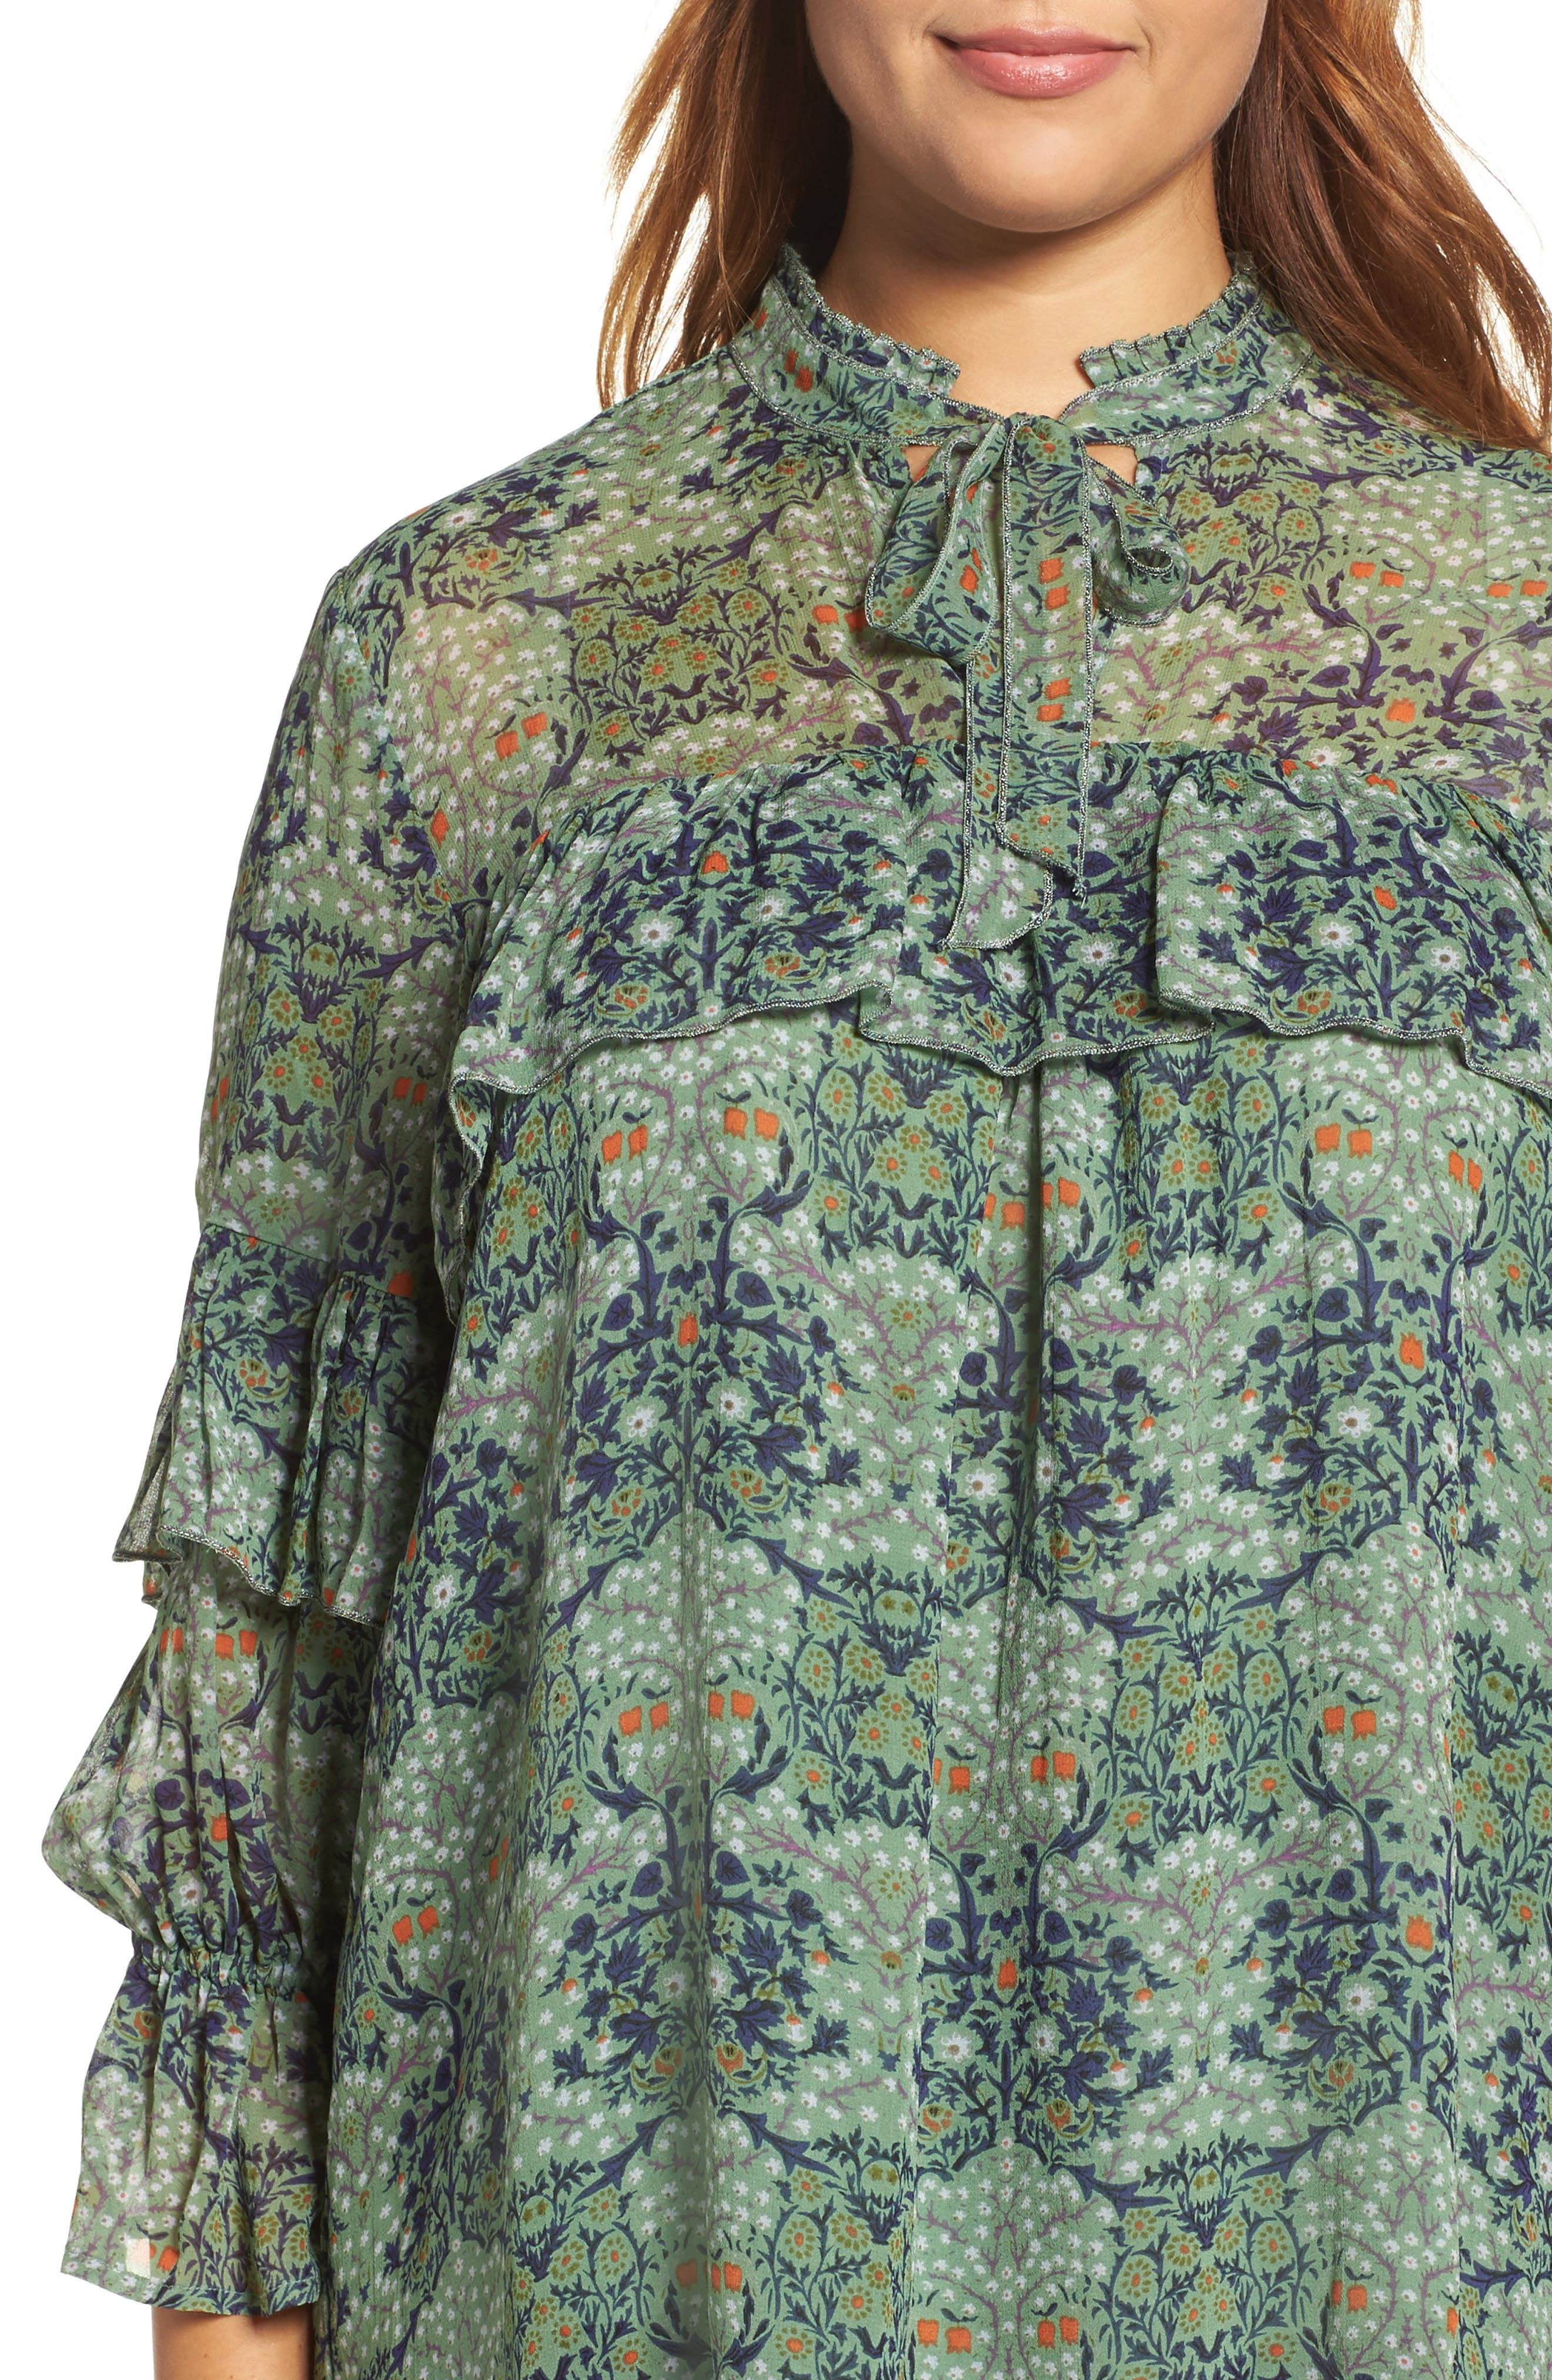 Ruffled Floral Blouse,                             Alternate thumbnail 4, color,                             Green Multi